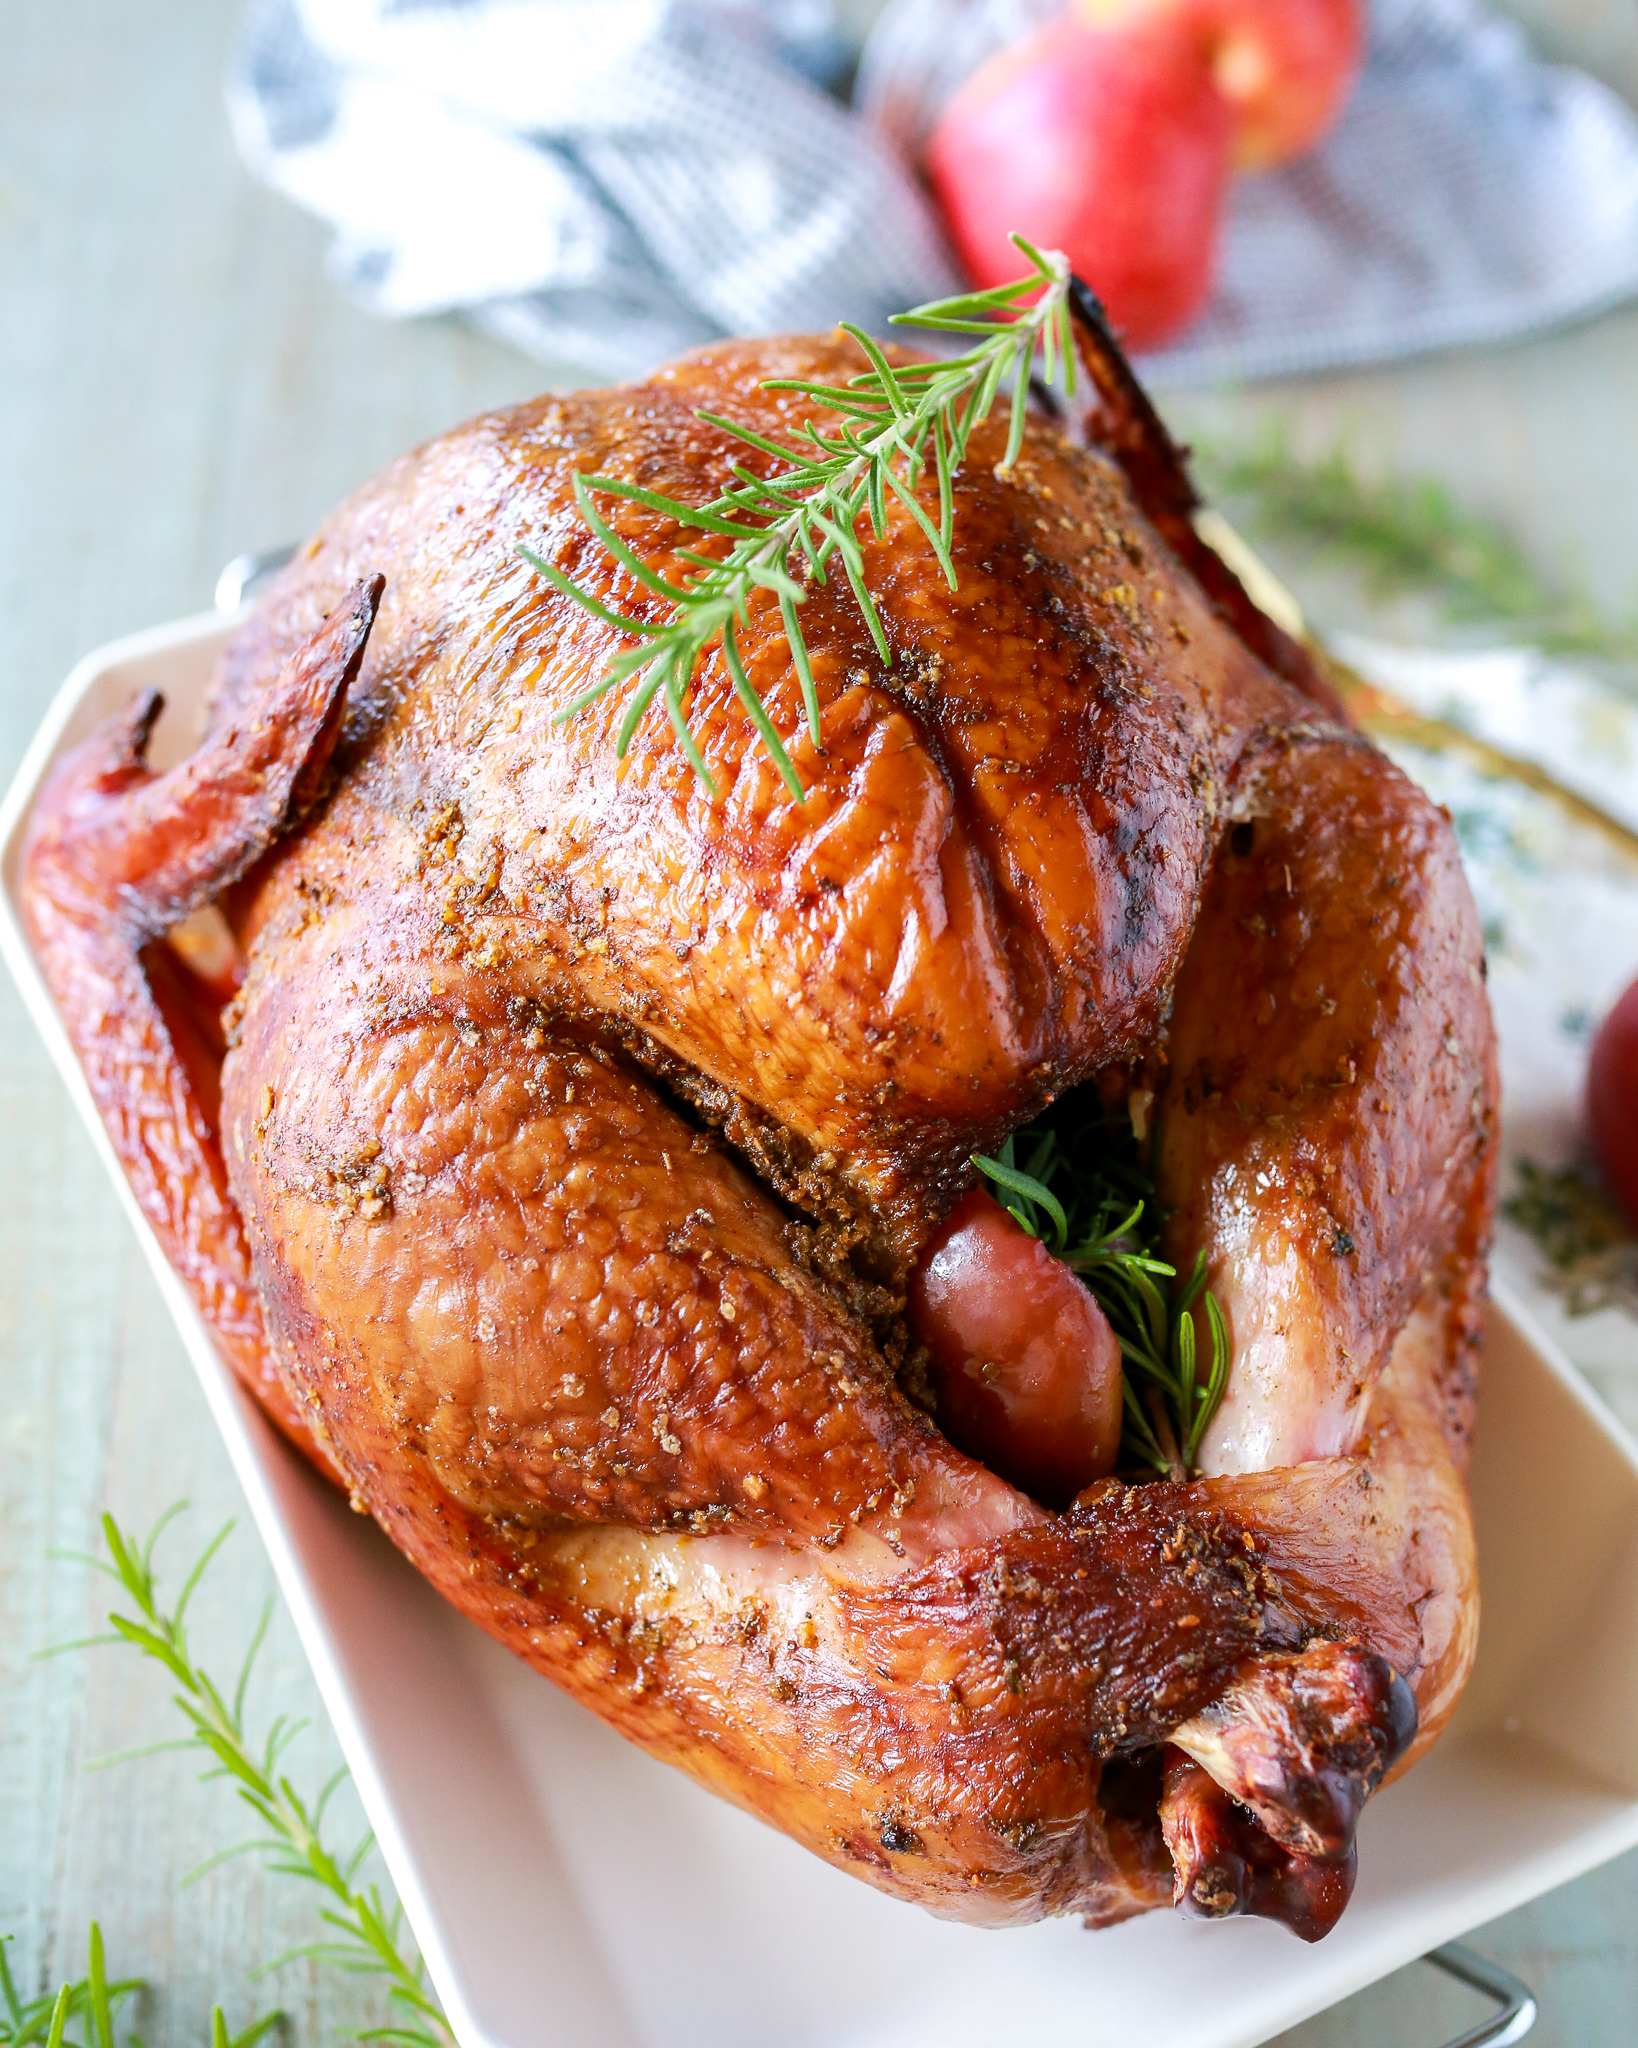 Easy tutorial for the most amazing smoked turkey ever that is totally moist and flavorful!